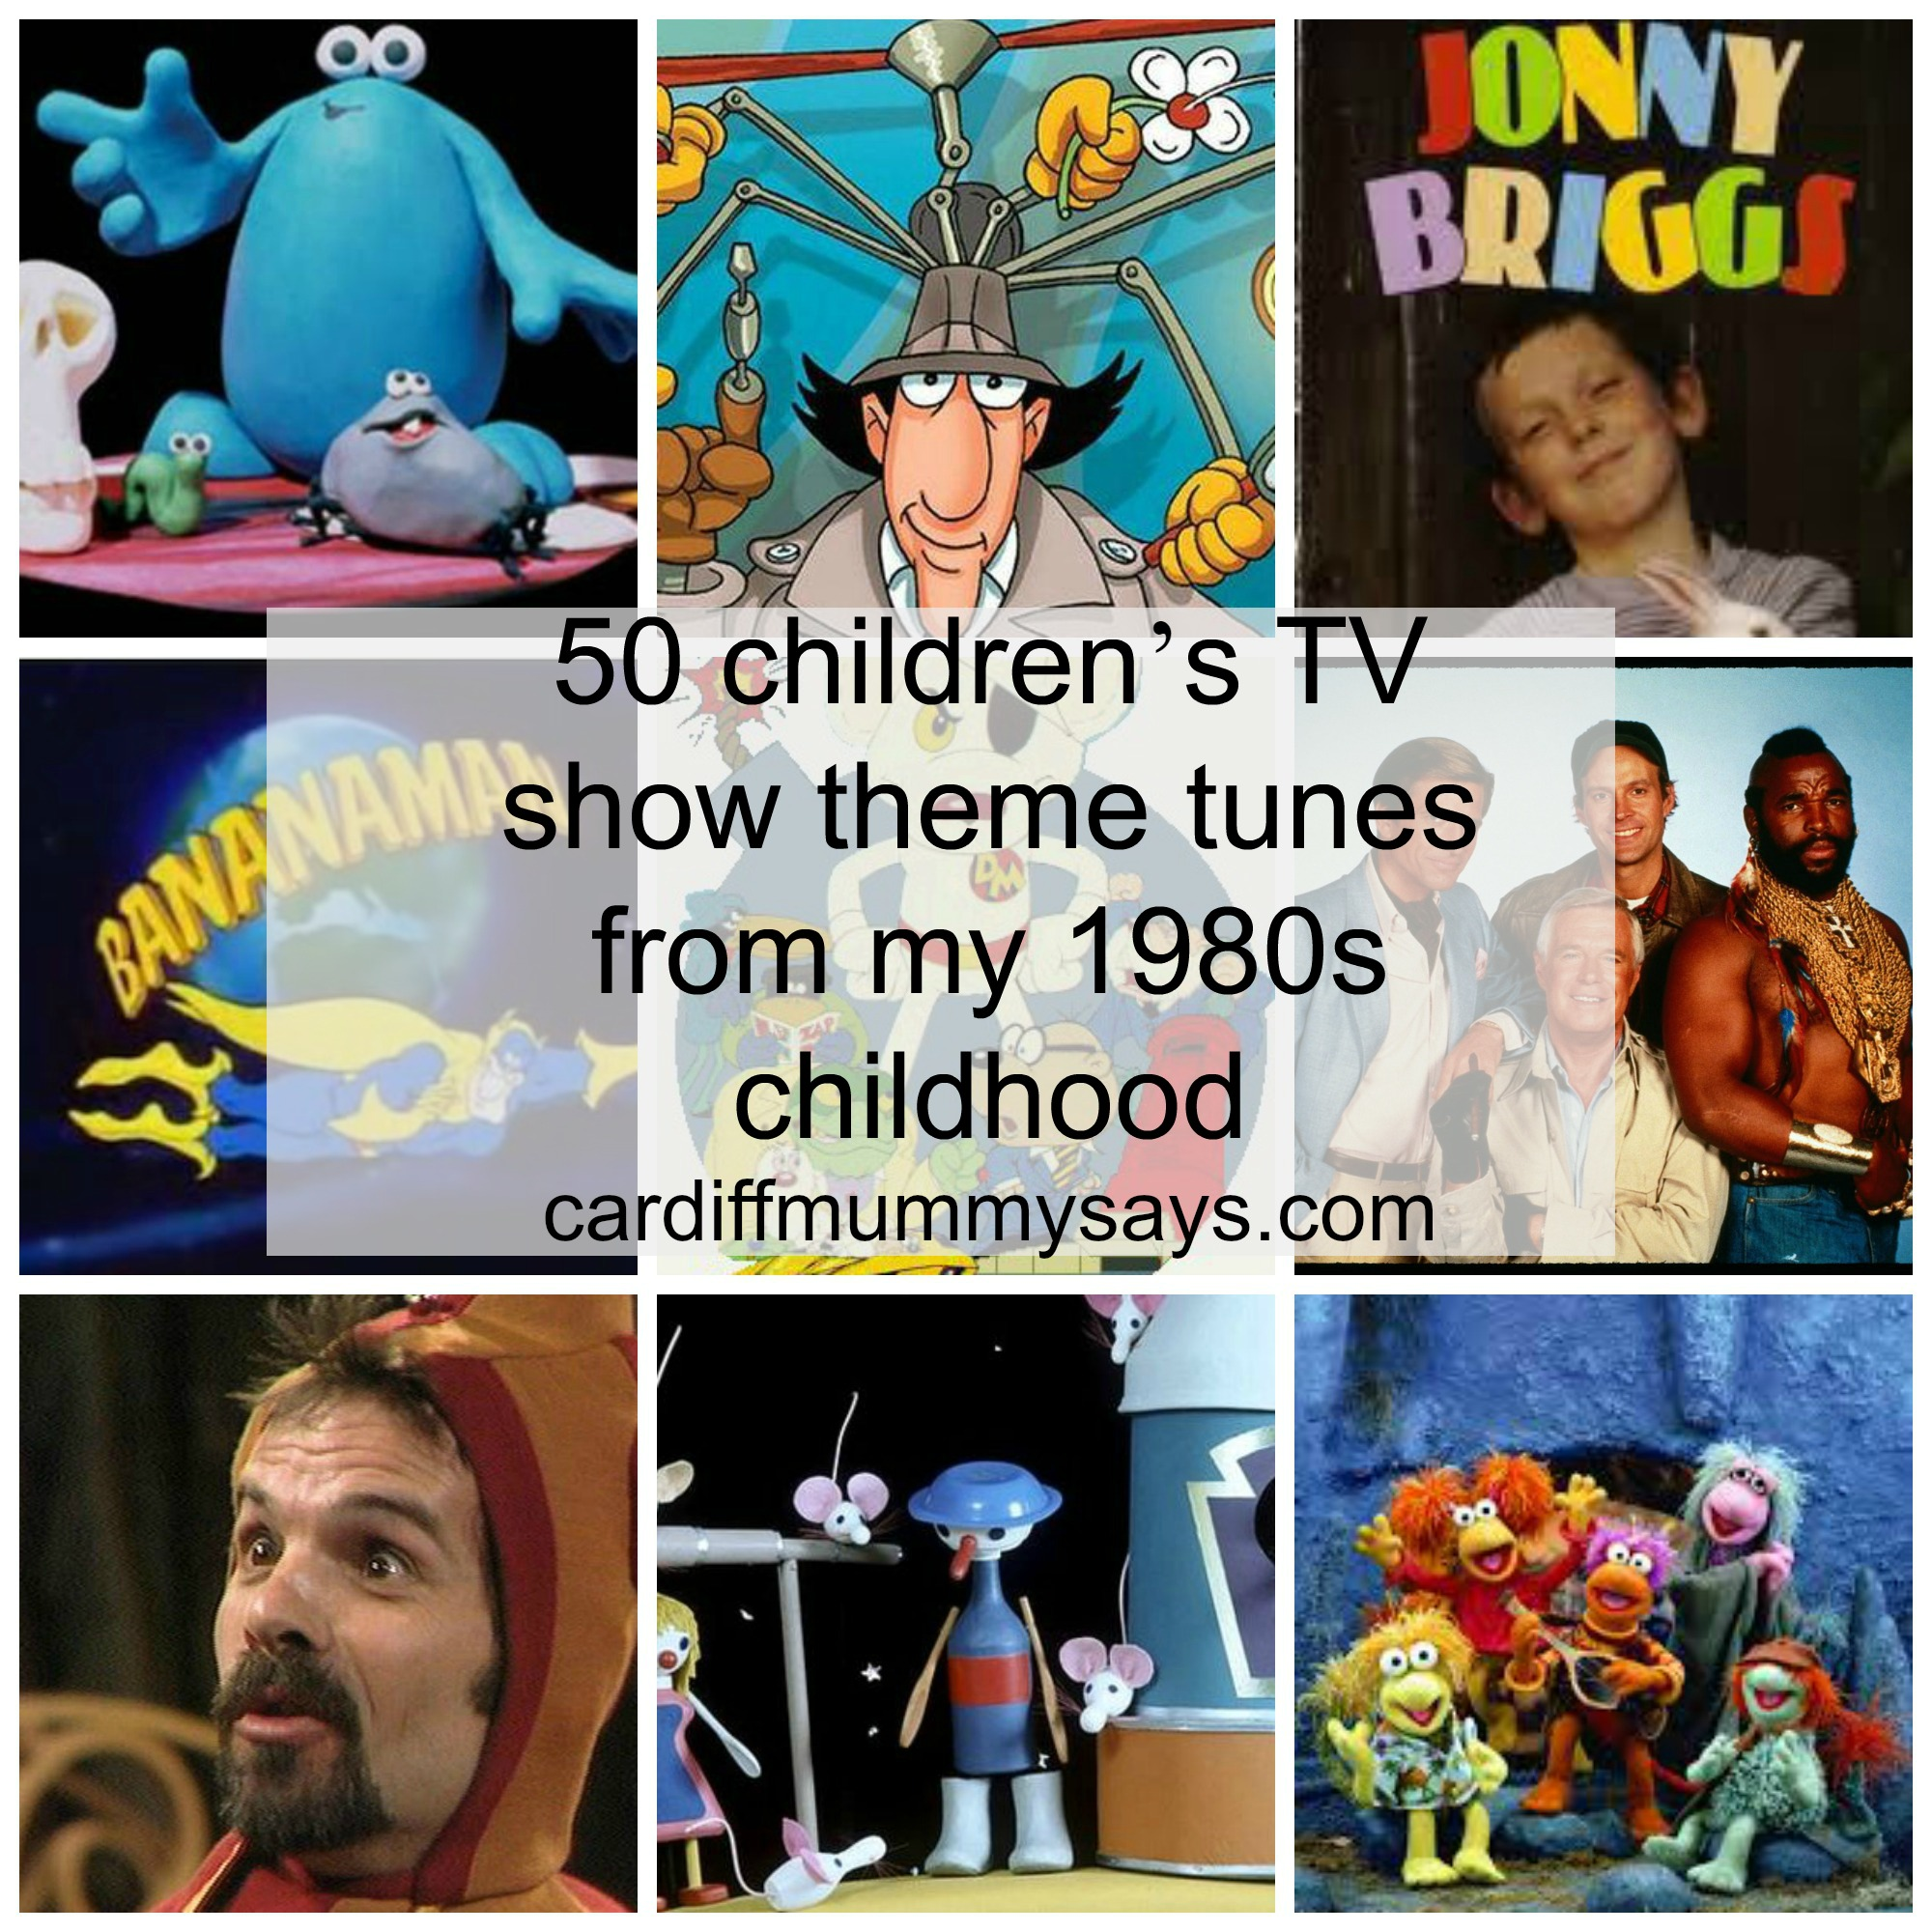 50 Children S Tv Show Theme Tunes From My 1980s Childhood Cardiff